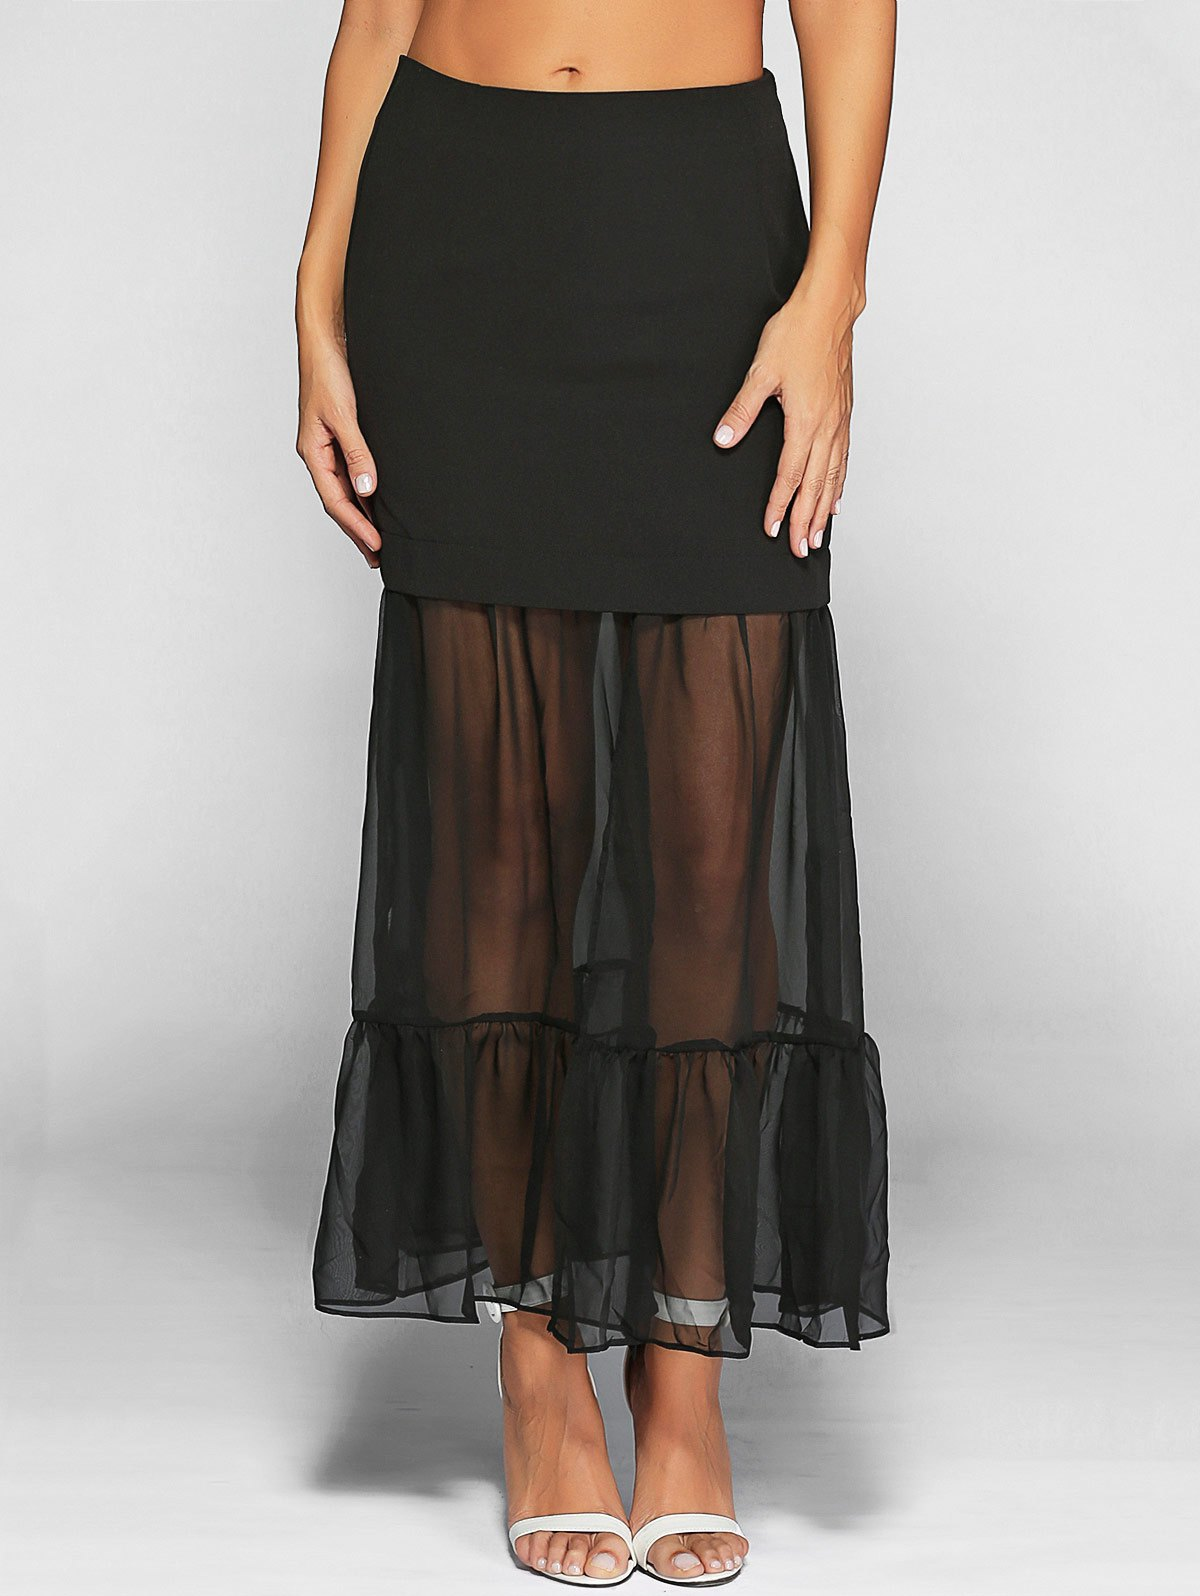 Ruffle See-Through Tulle Maxi SkirtClothes<br><br><br>Size: 2XL<br>Color: BLACK